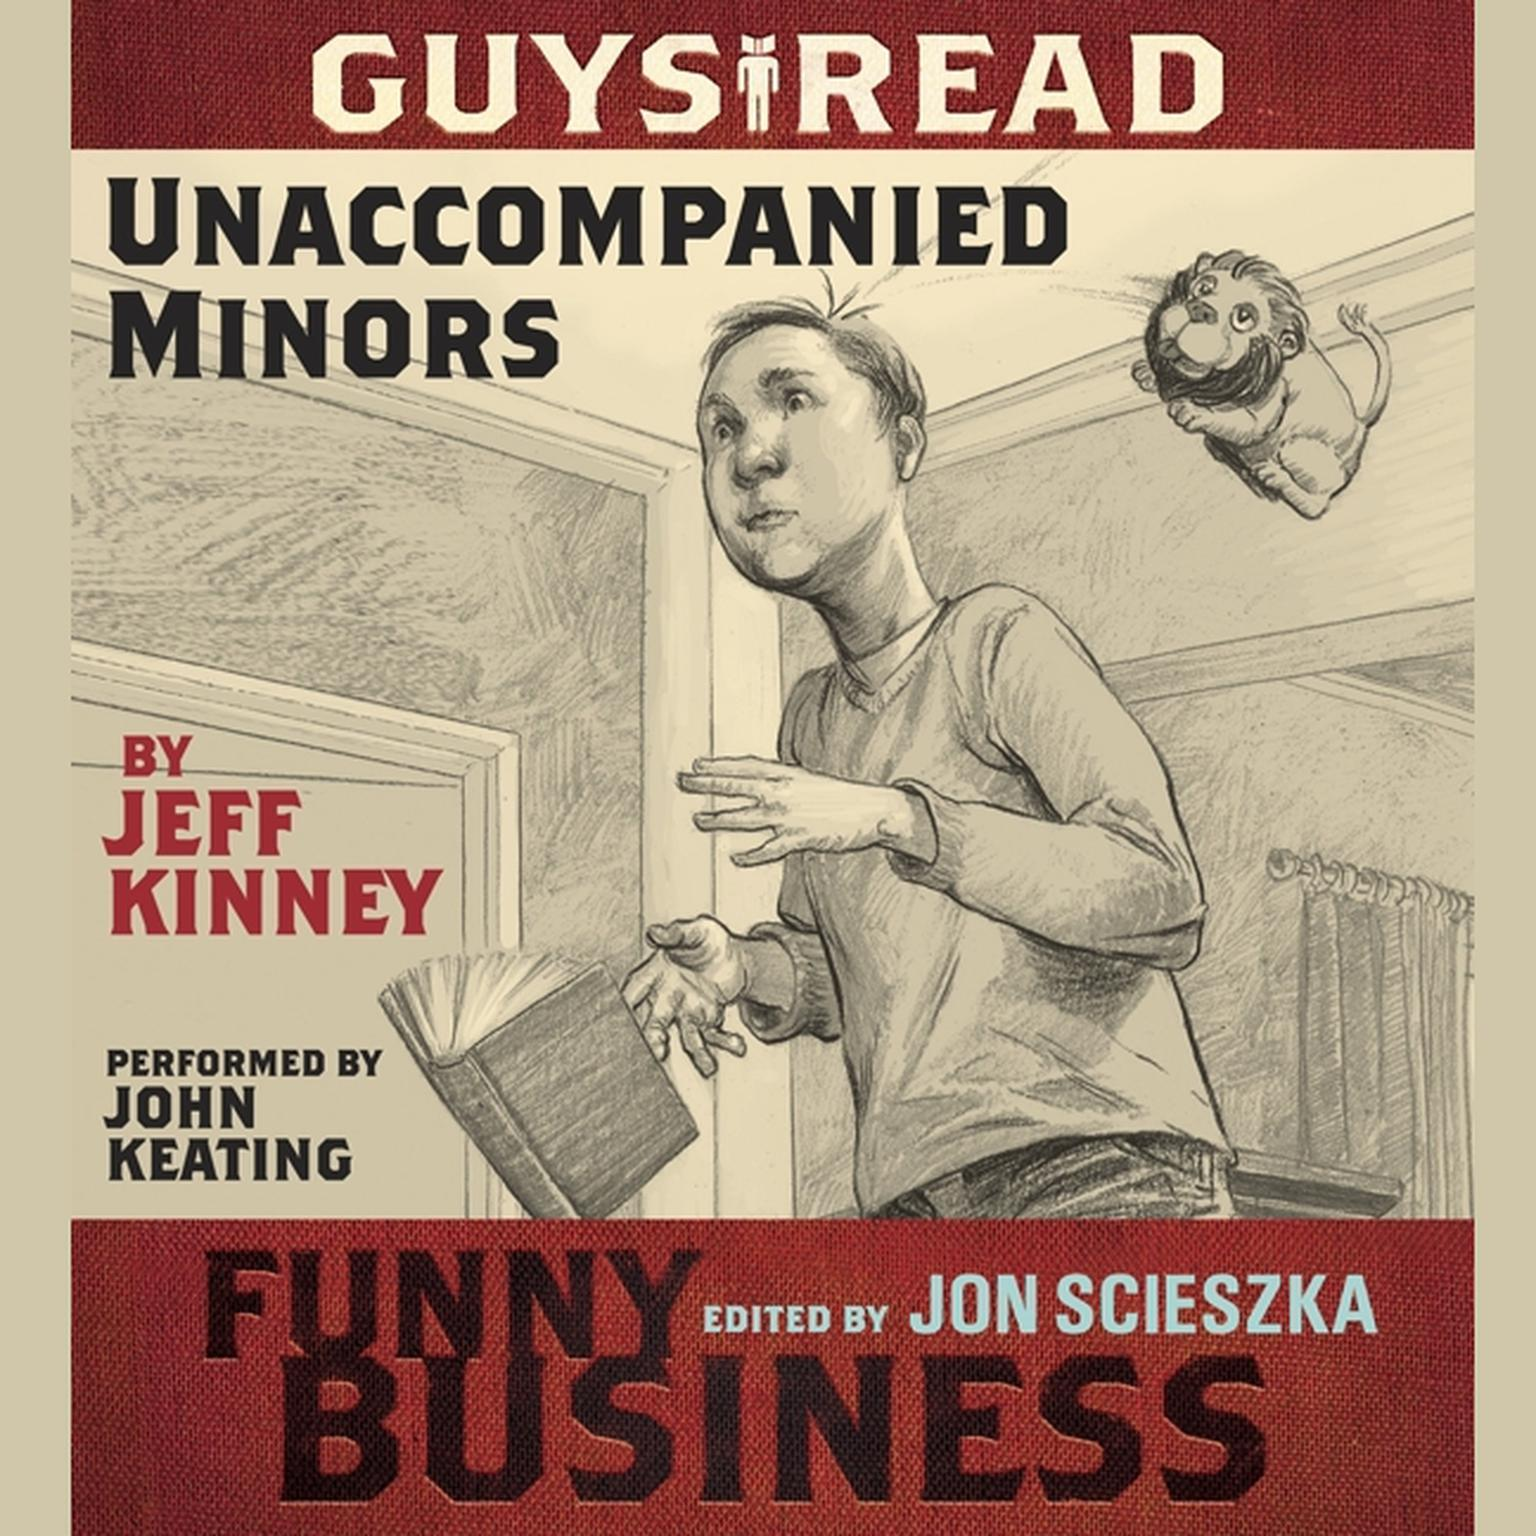 Printable Guys Read: Unaccompanied Minors: A Story from Guys Read: Funny Business Audiobook Cover Art